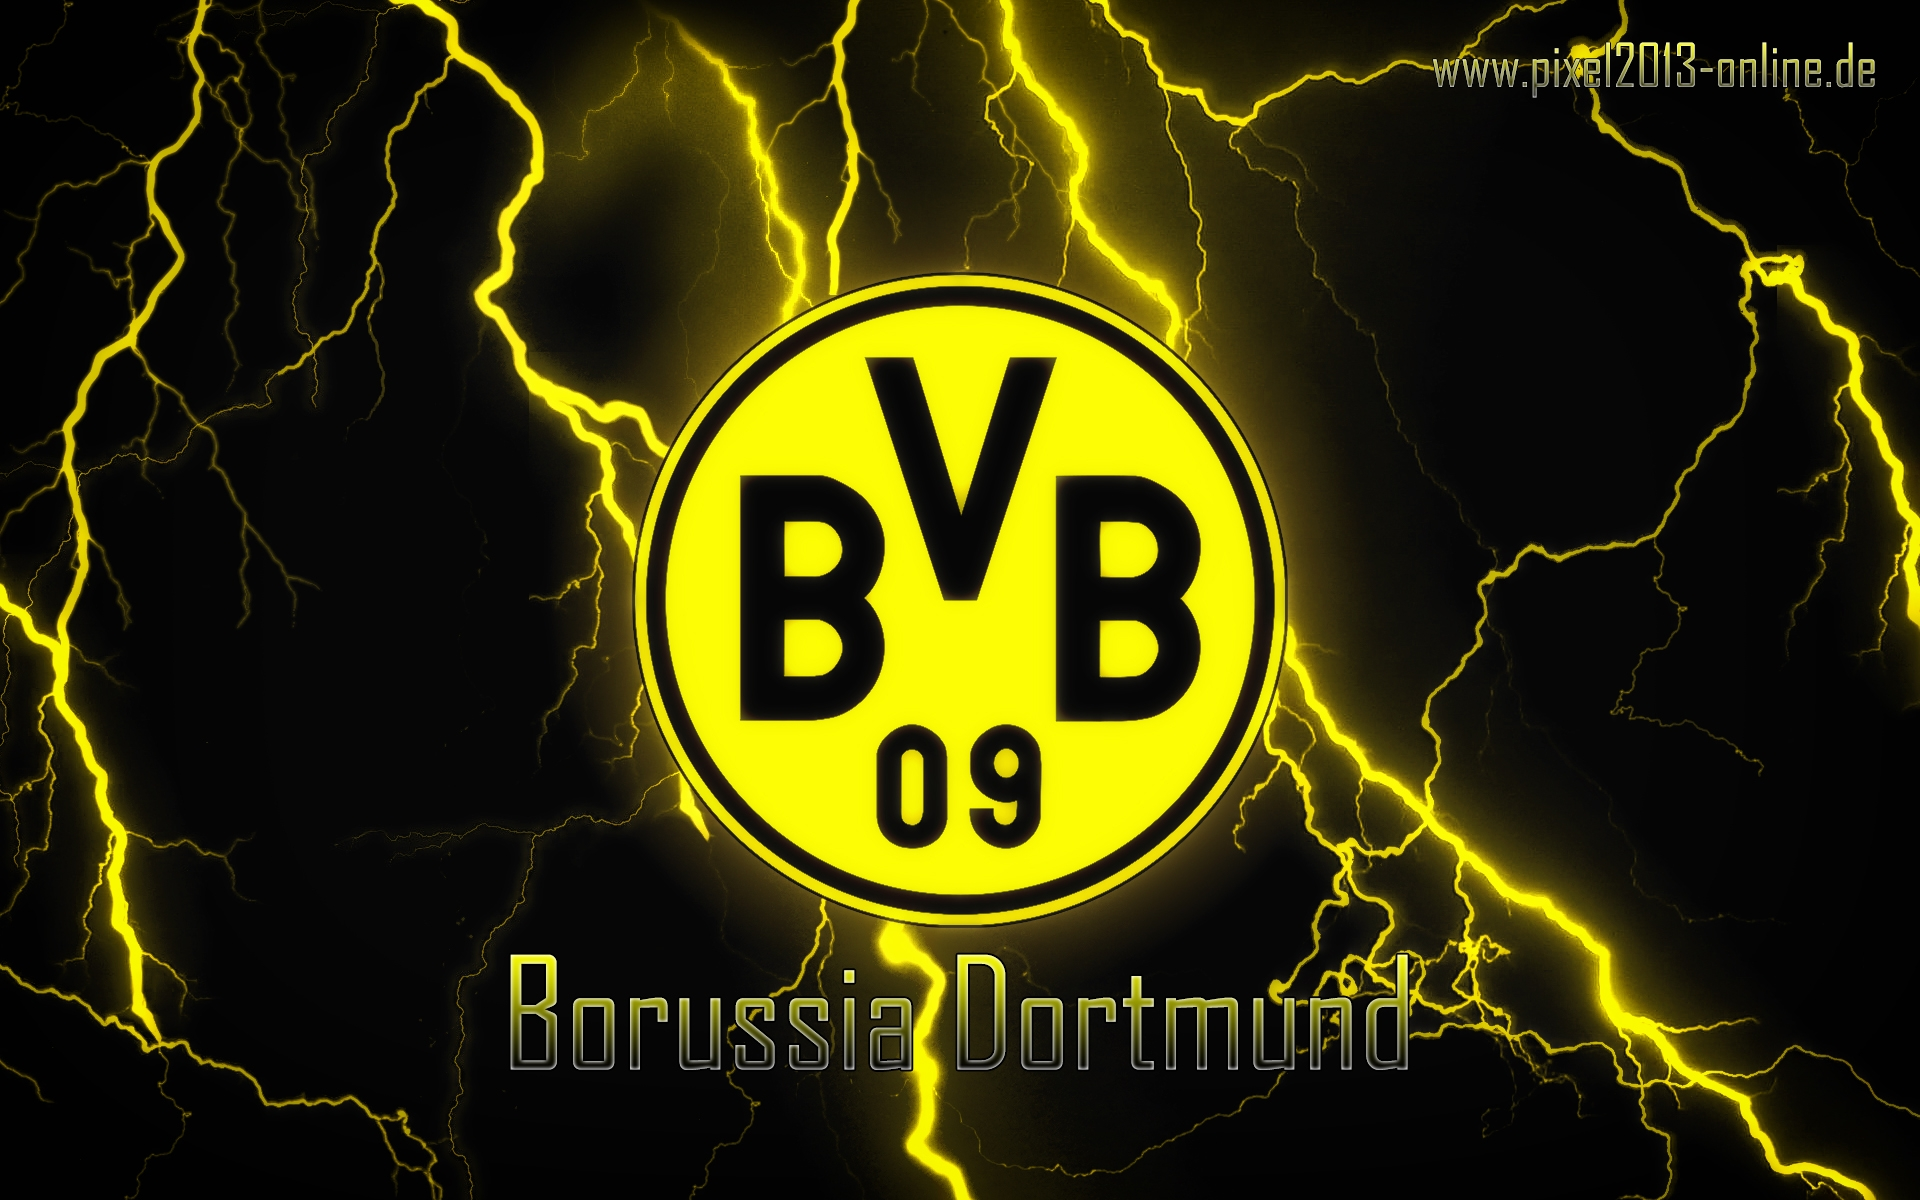 Borussia Dortmund Pics, Sports Collection